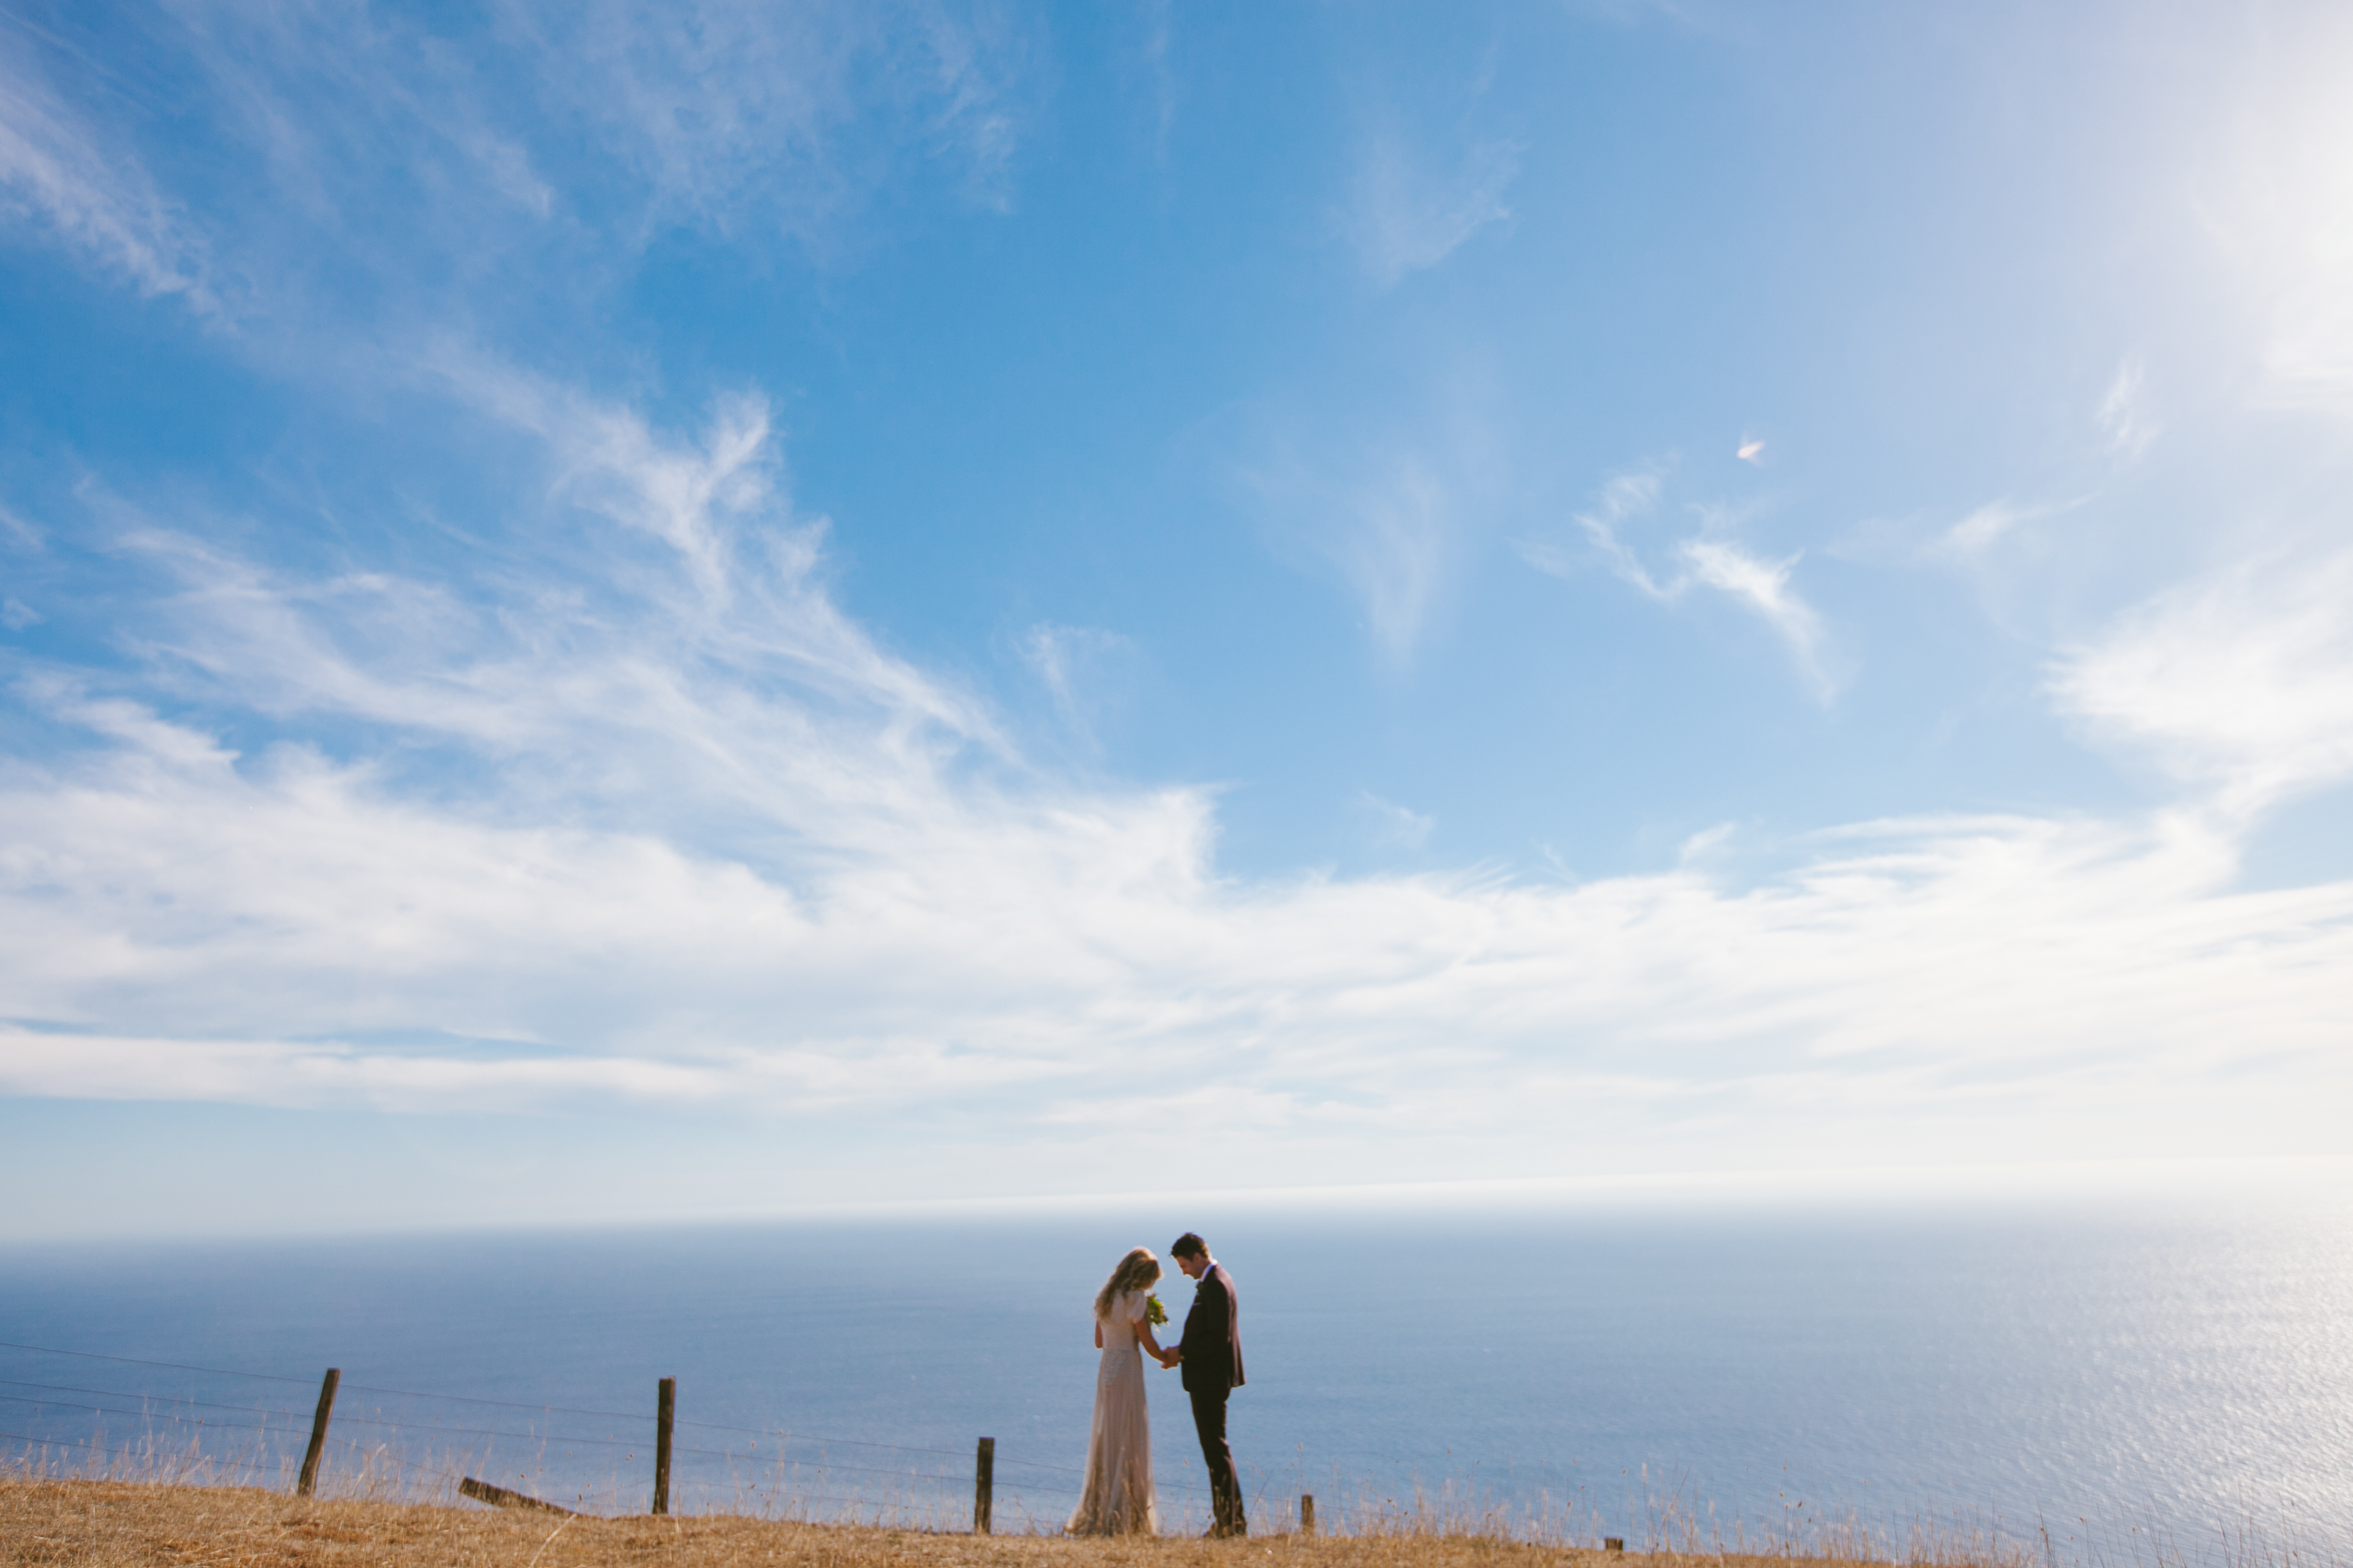 Sea Stars Big Sur Catering and Events & Stardust Vintage Rentals image 3